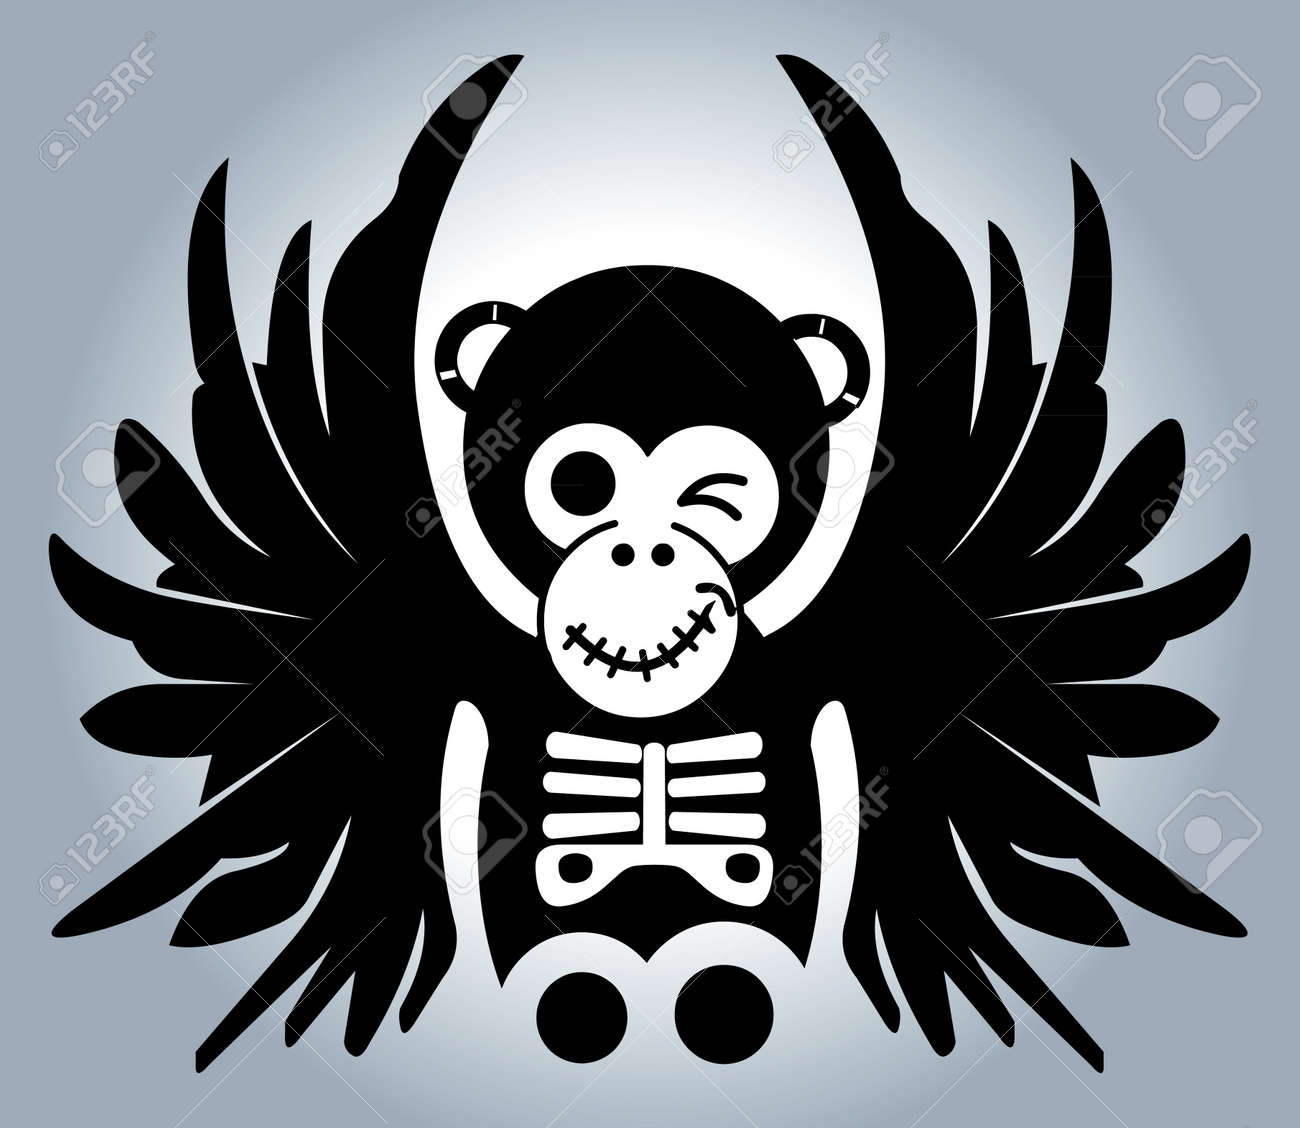 monkey with wings - illustration Stock Vector - 14286319